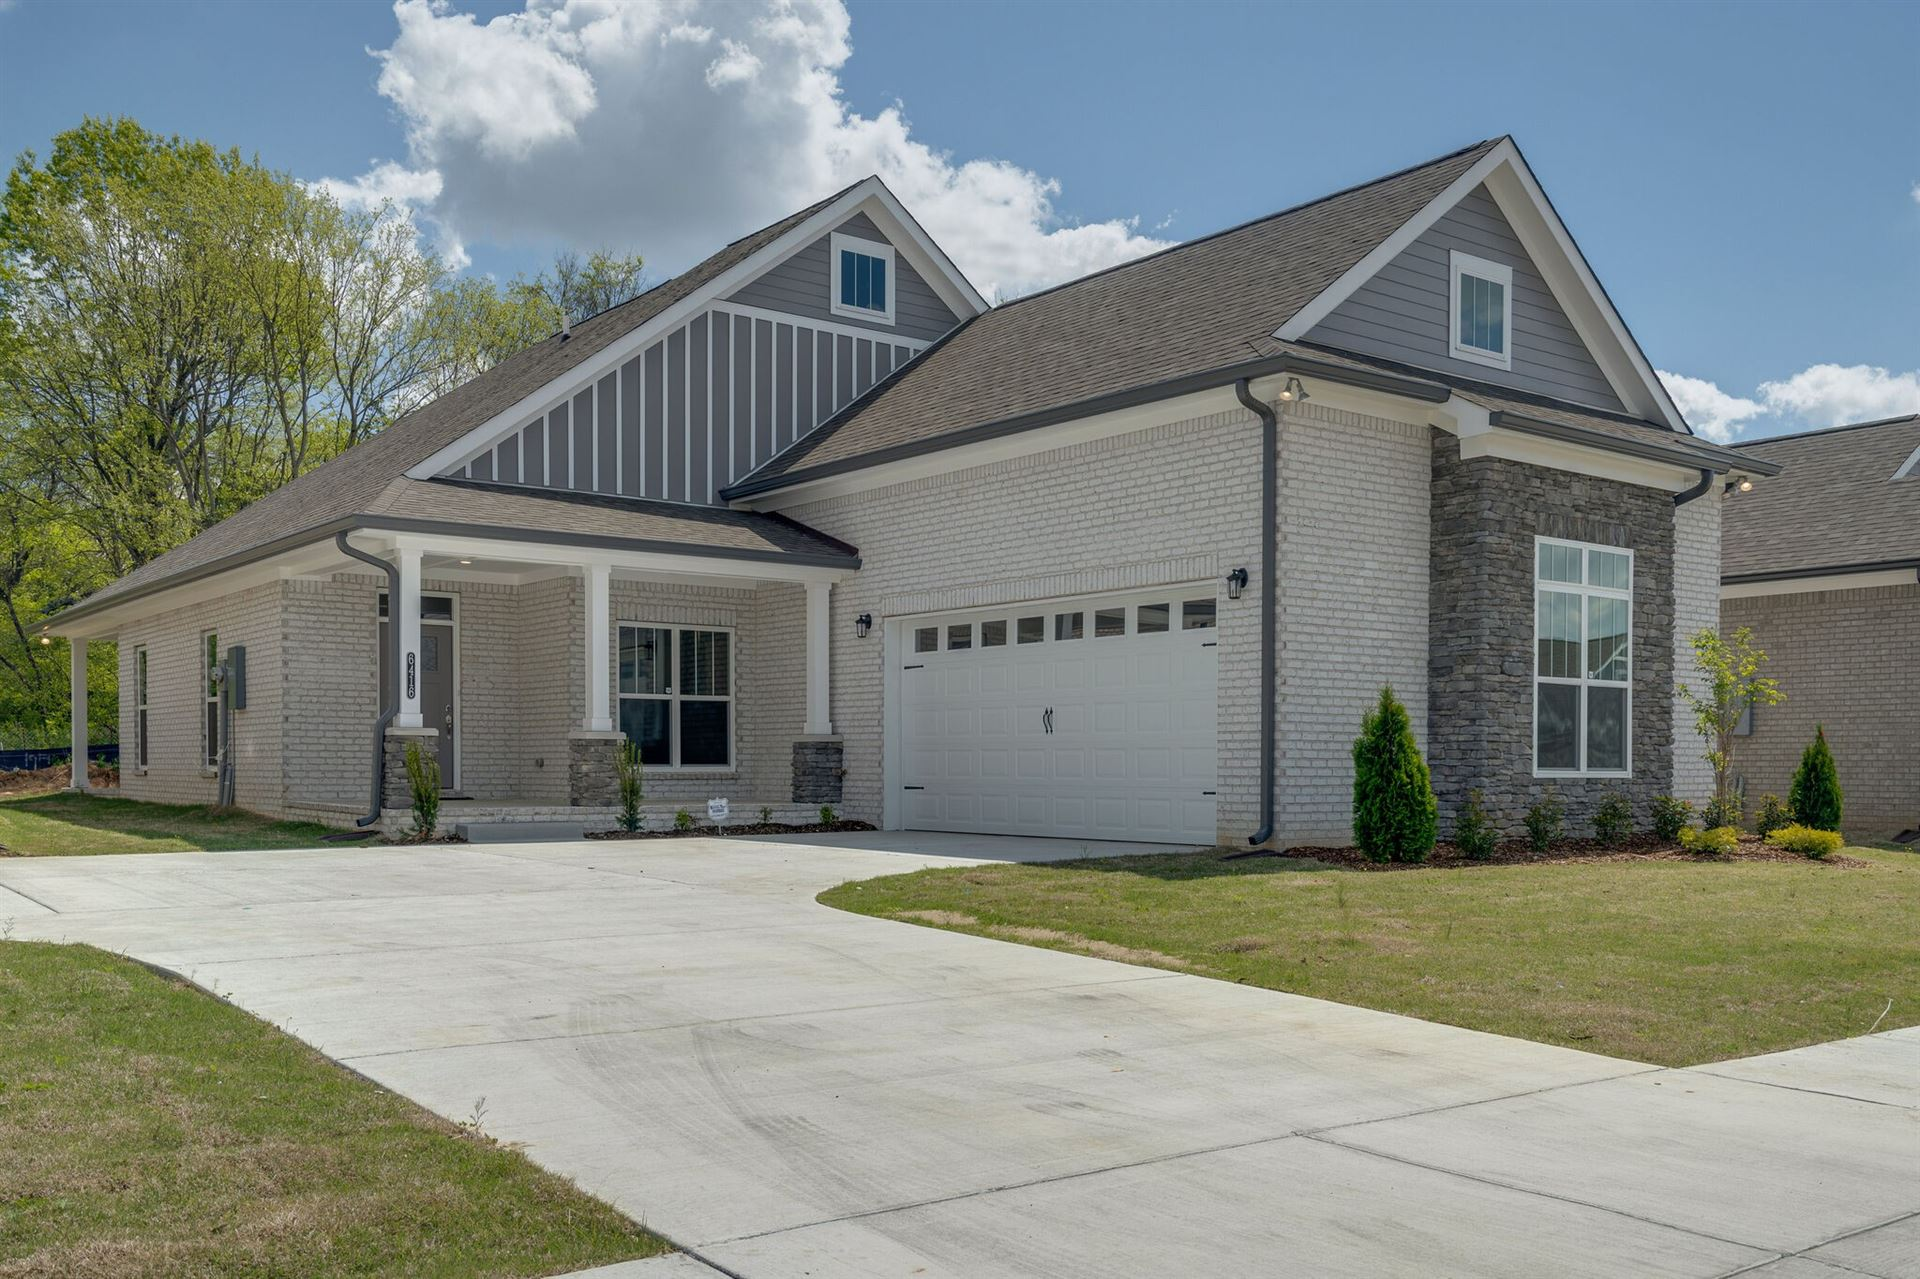 6416 Armstrong Drive, Hermitage, TN 37076 - MLS#: 2243745